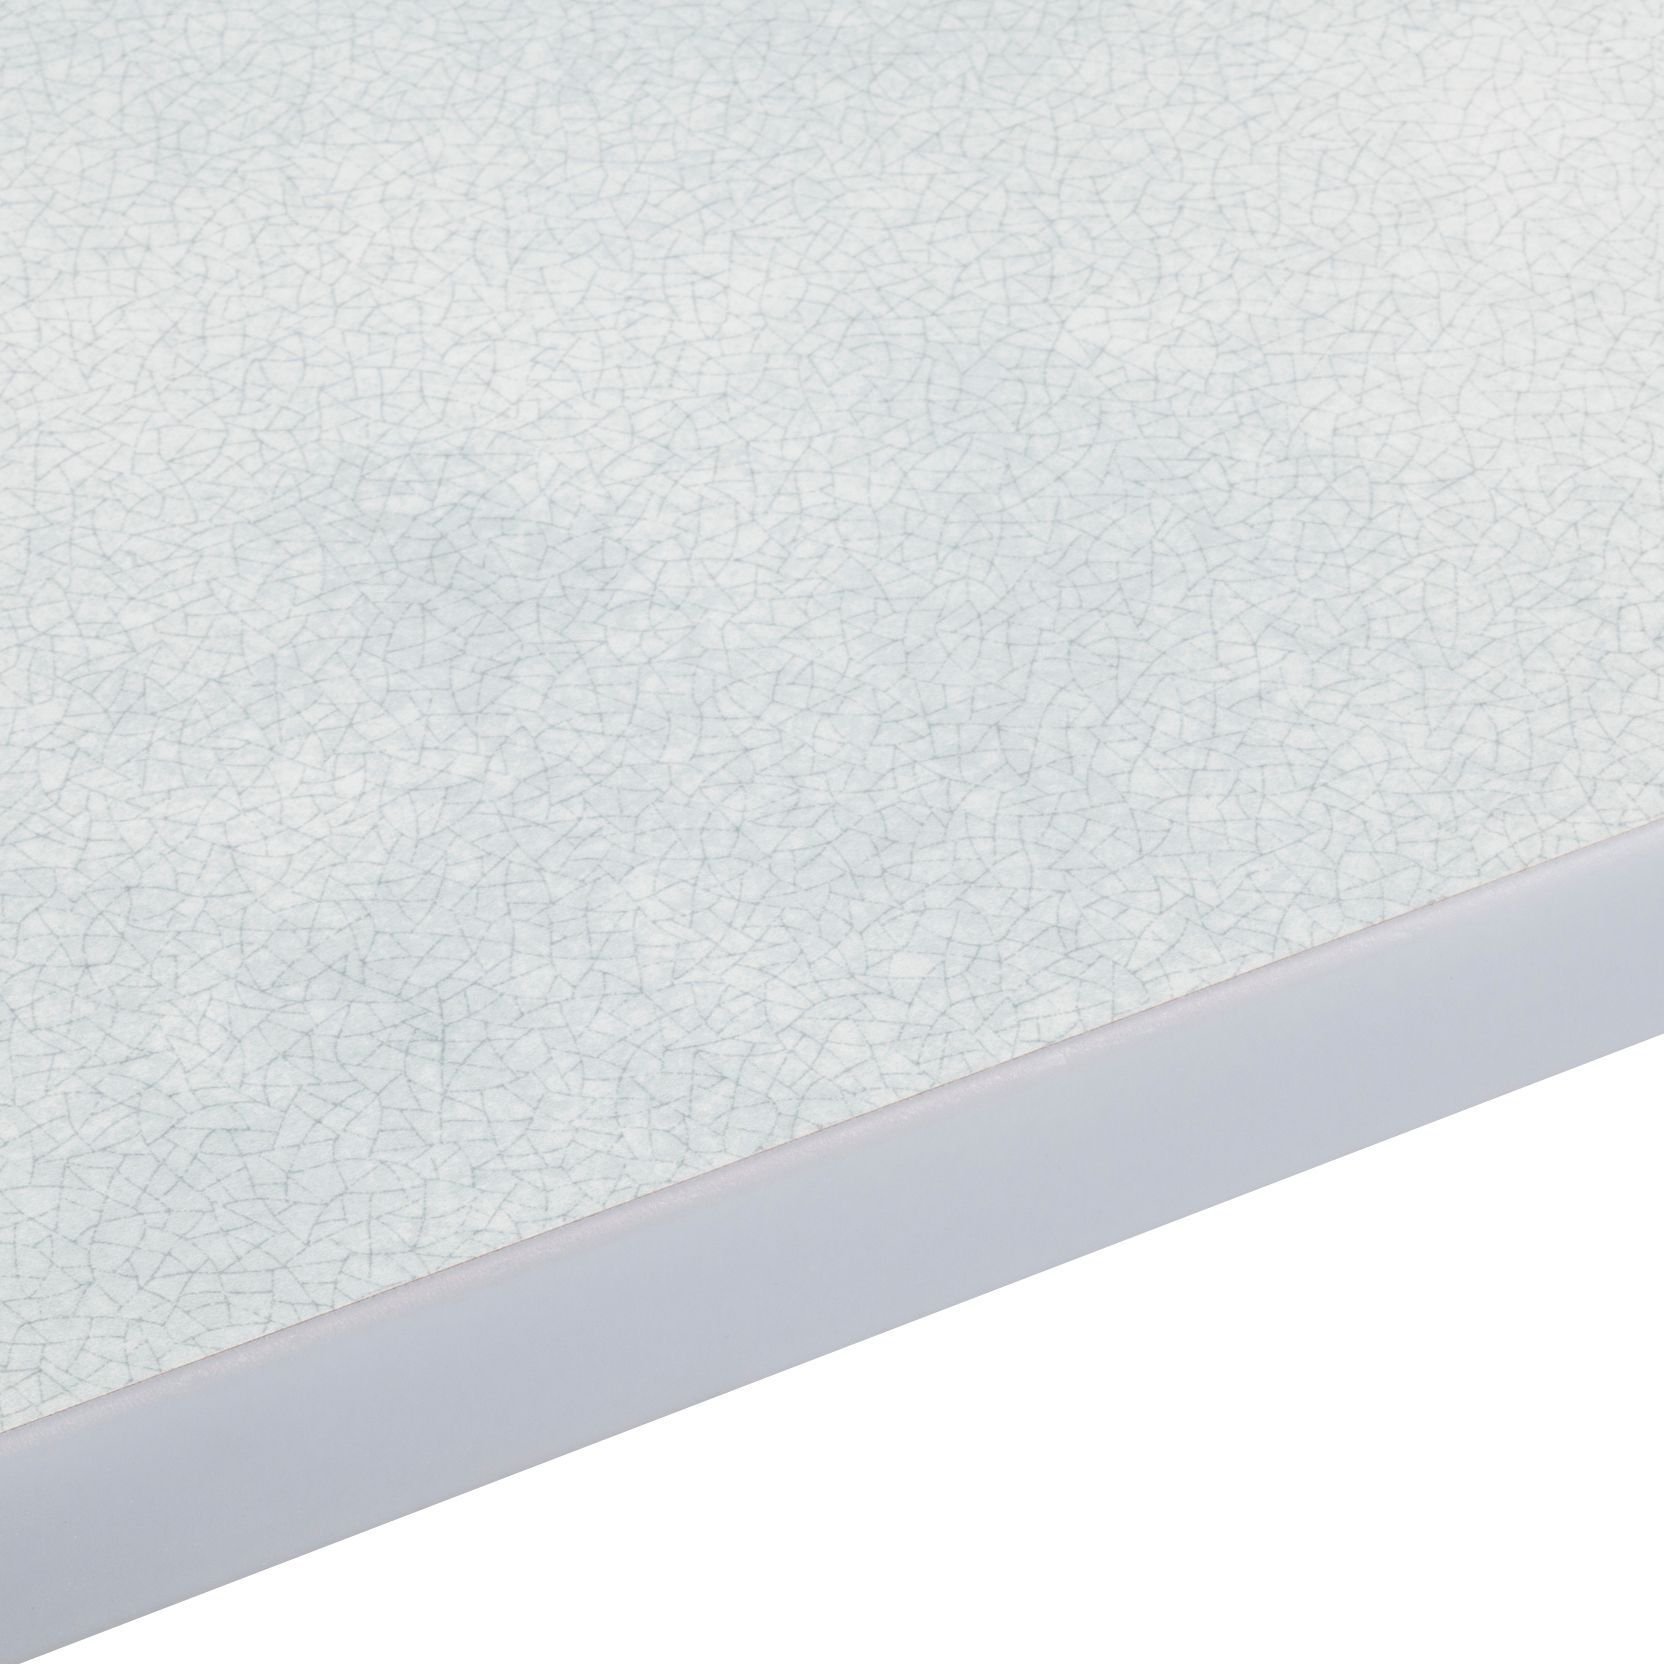 White Laminate Kitchen Worktops 28mm Bq Cracked Glass Gloss Square Edge Kitchen Worktop L3m D